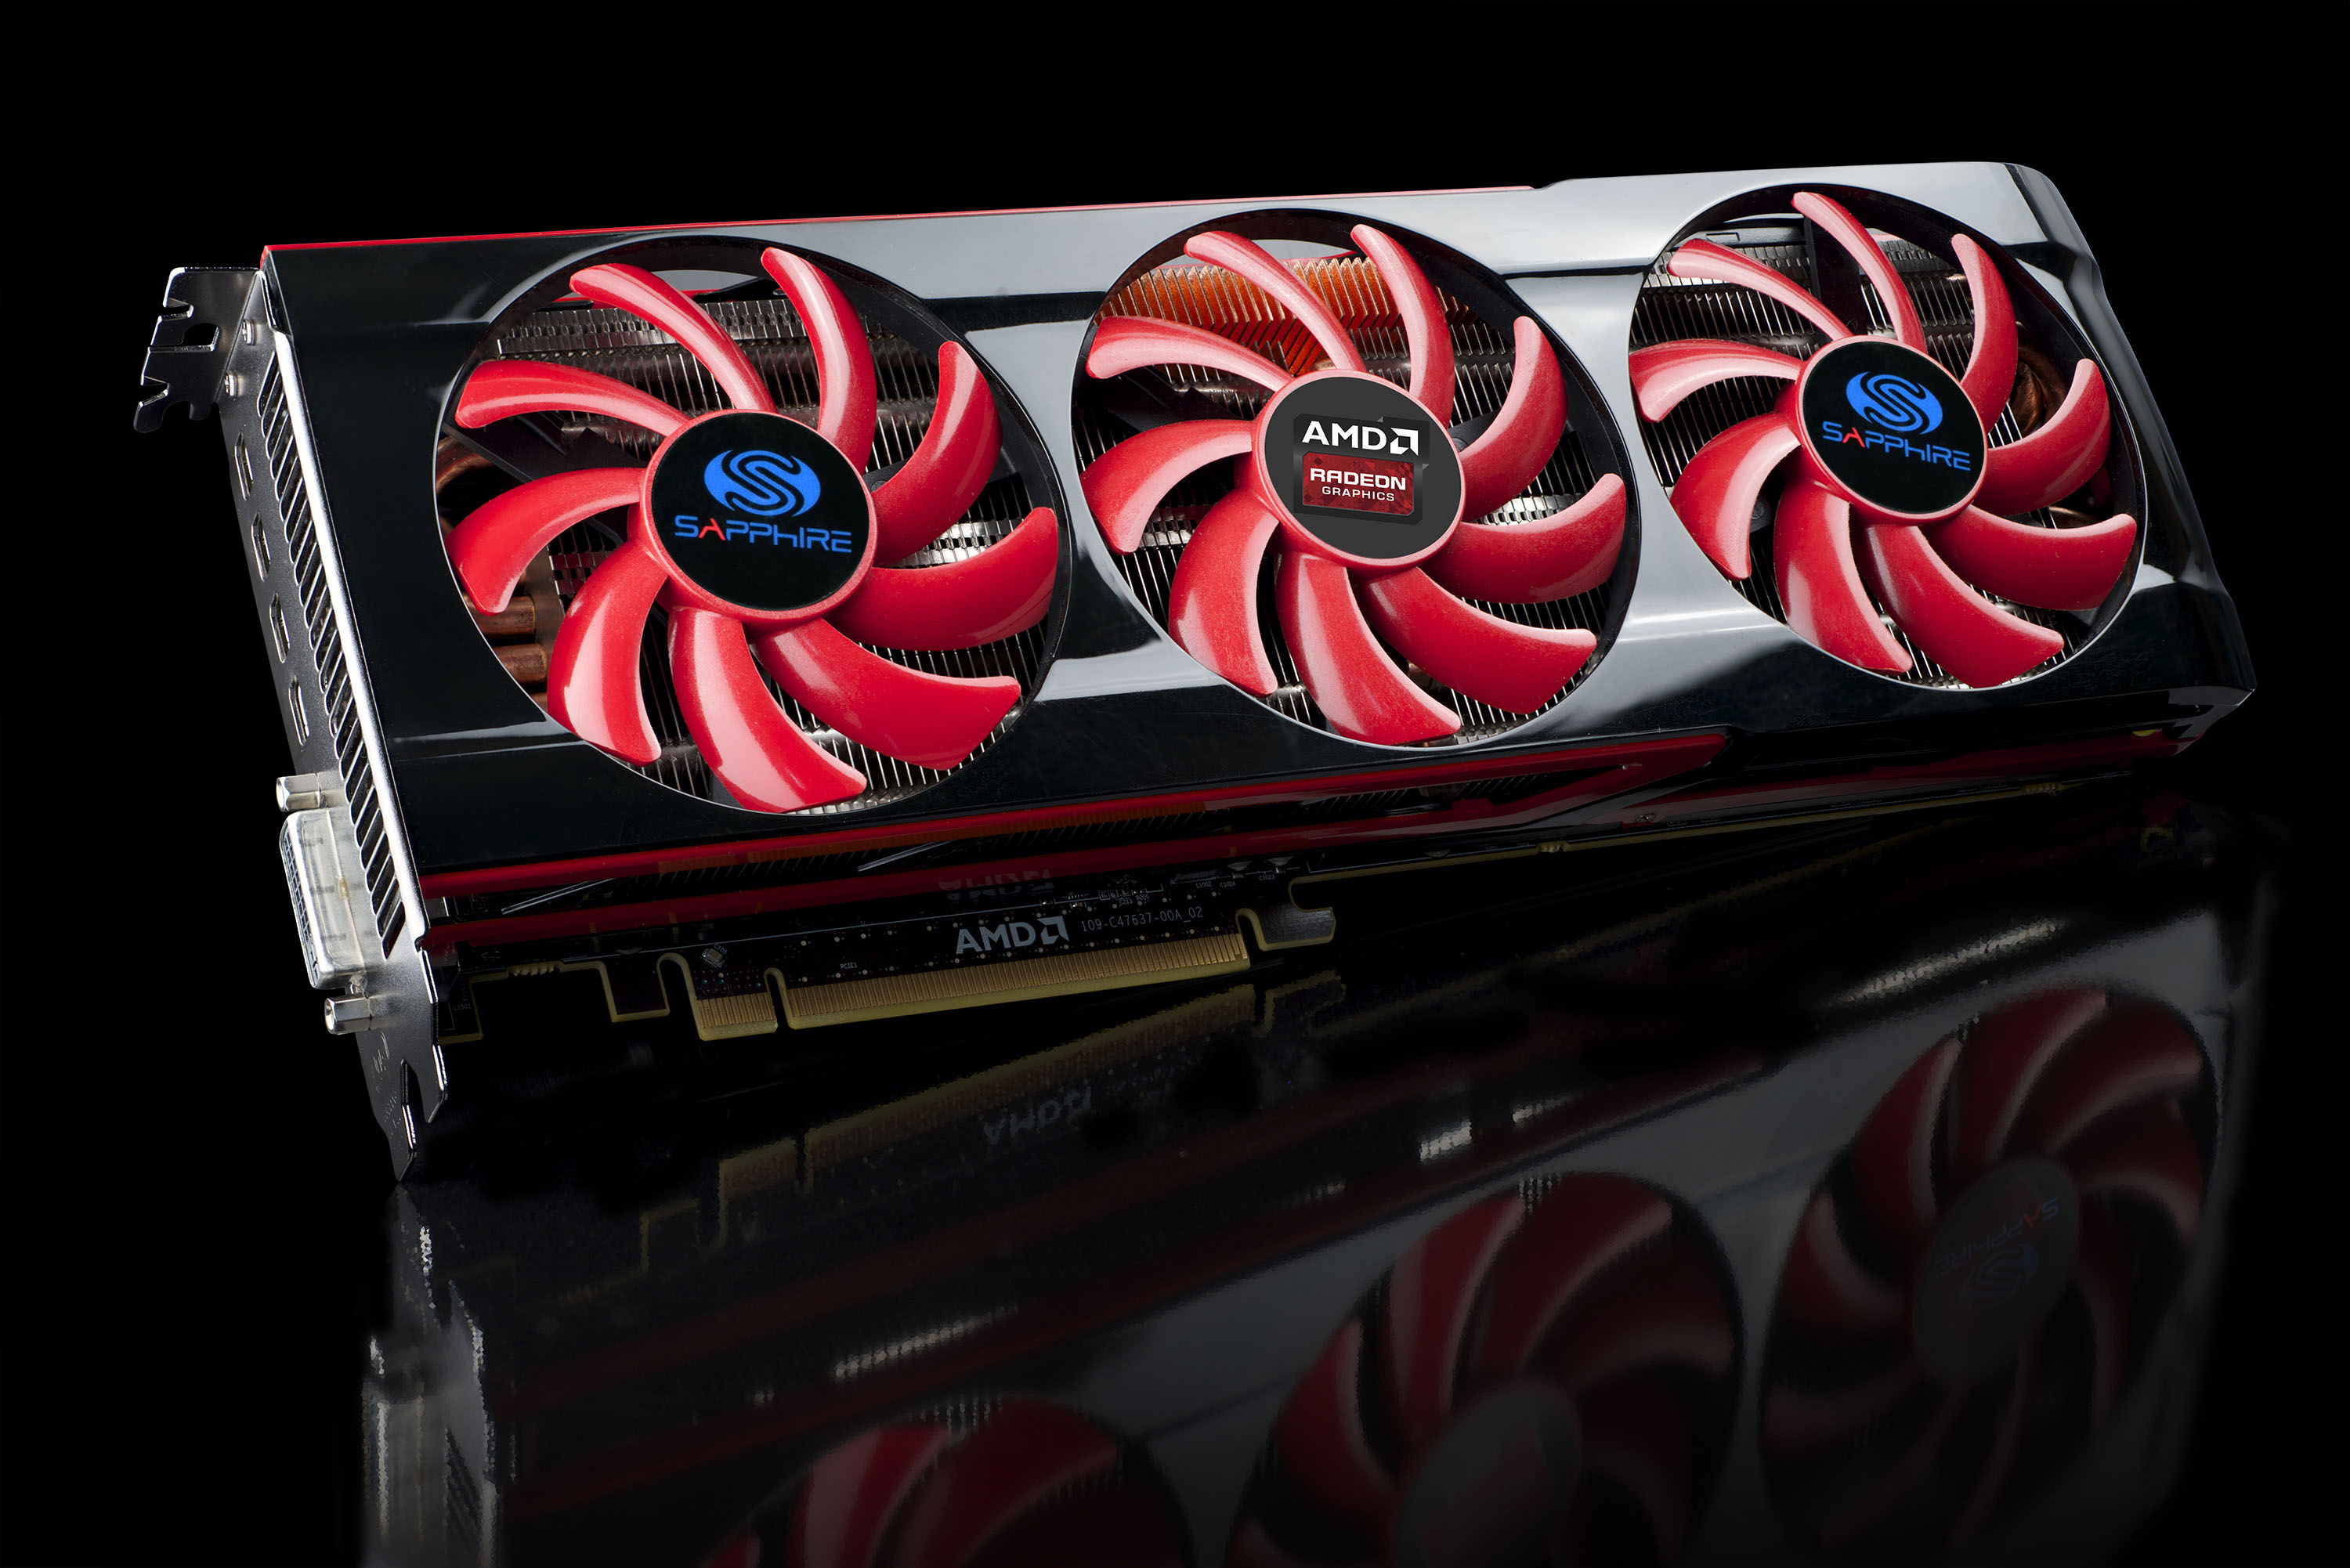 AMD and SAPPHIRE Releases The SAPPHIRE HD 7990 AMD, Sapphire, Video Card 4